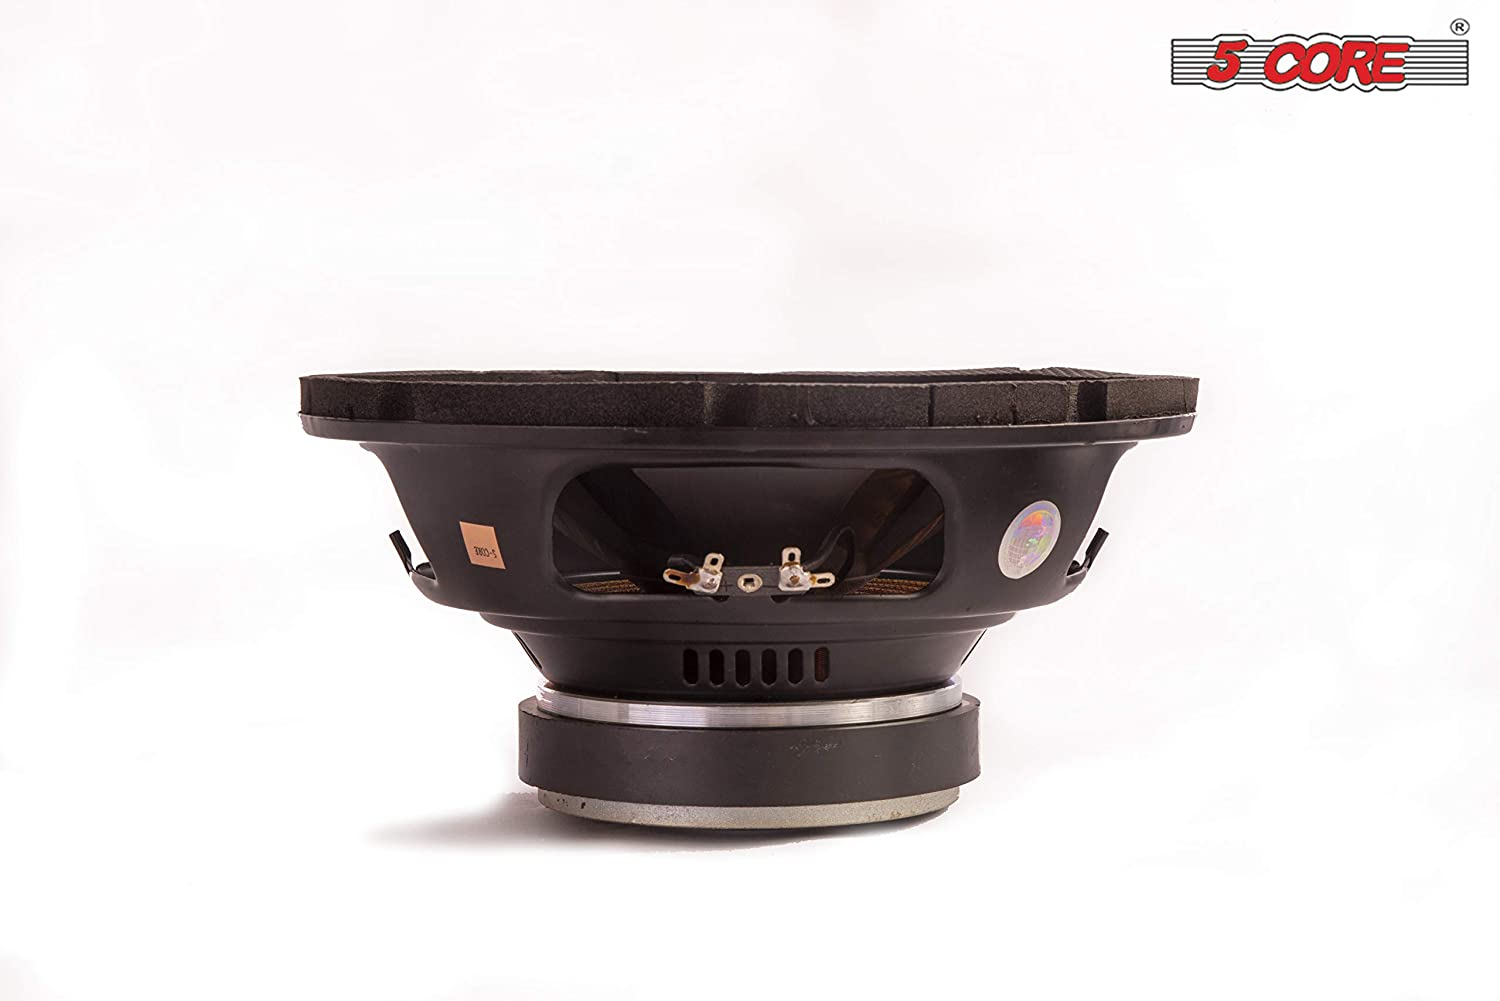 Dual Voice Coil 5 Core Car Vehicle Subwoofer Audio Speaker PP Cone Heavy Bass 8-01 Bazooka Surround Sound Hi Performance for Long Drives High Power for Vehicle Stereo Sound System